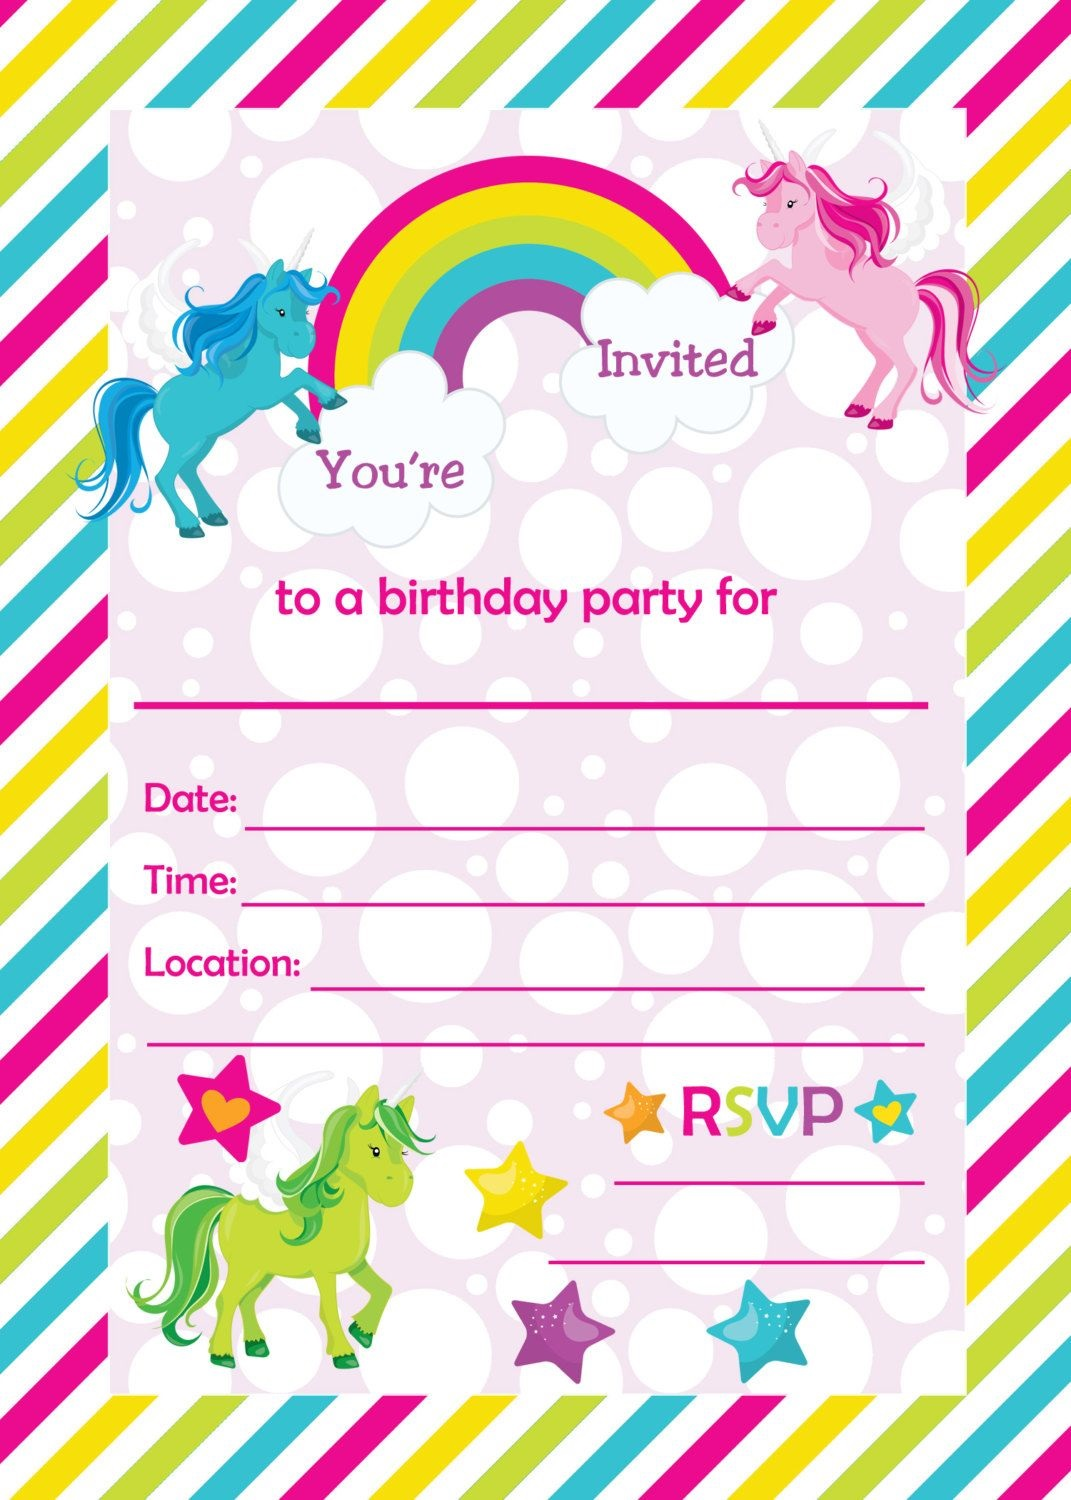 000 Remarkable Birthday Party Invitation Template High Definition  Templates Google Doc 80th Free Download OnlineFull